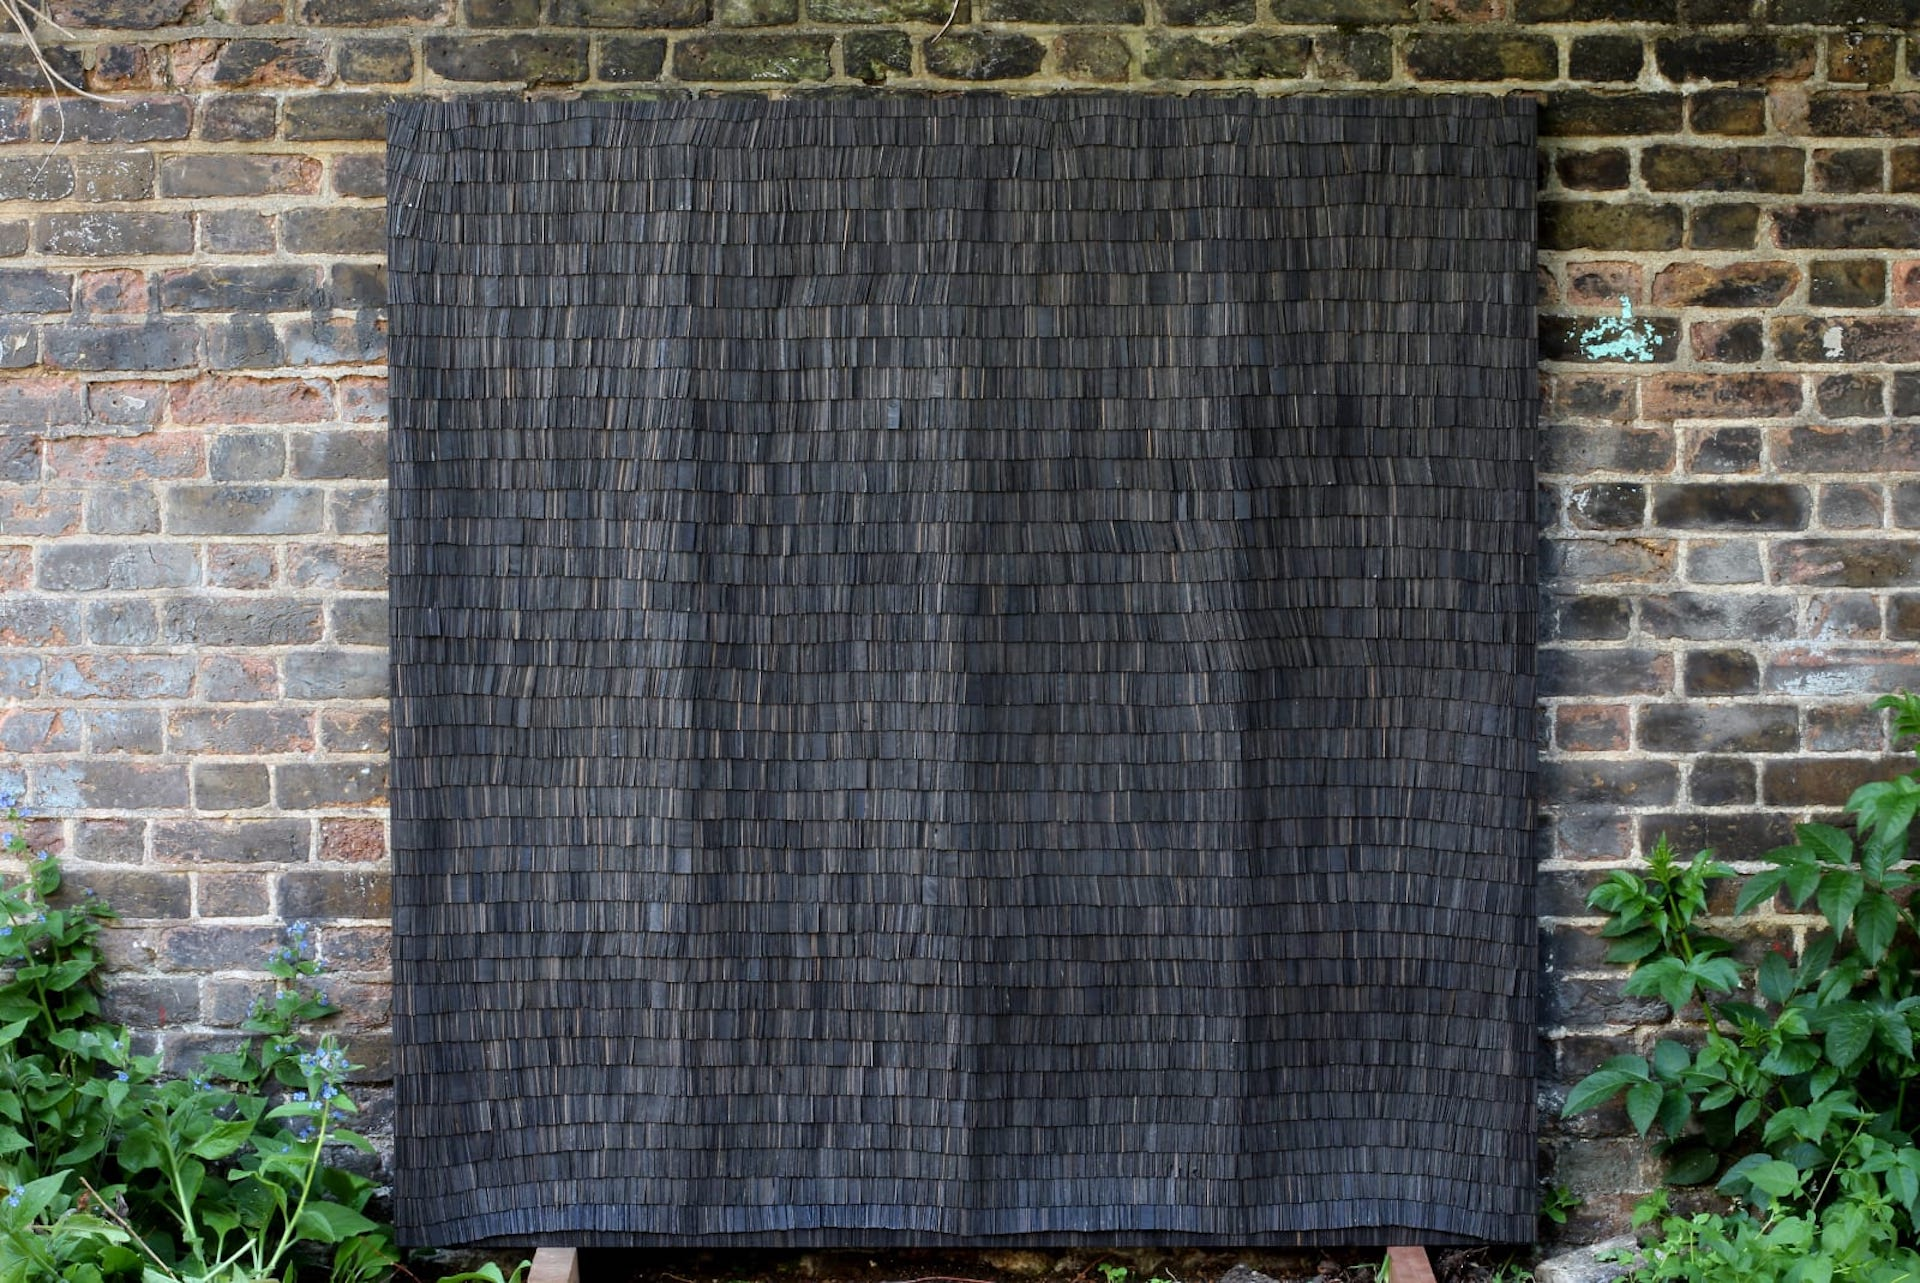 Hundred Foot Drain 10 by Wycliffe Stutchbury, 2020; composed of excavated bog oak. Photo © Sarah Myerscough Gallery